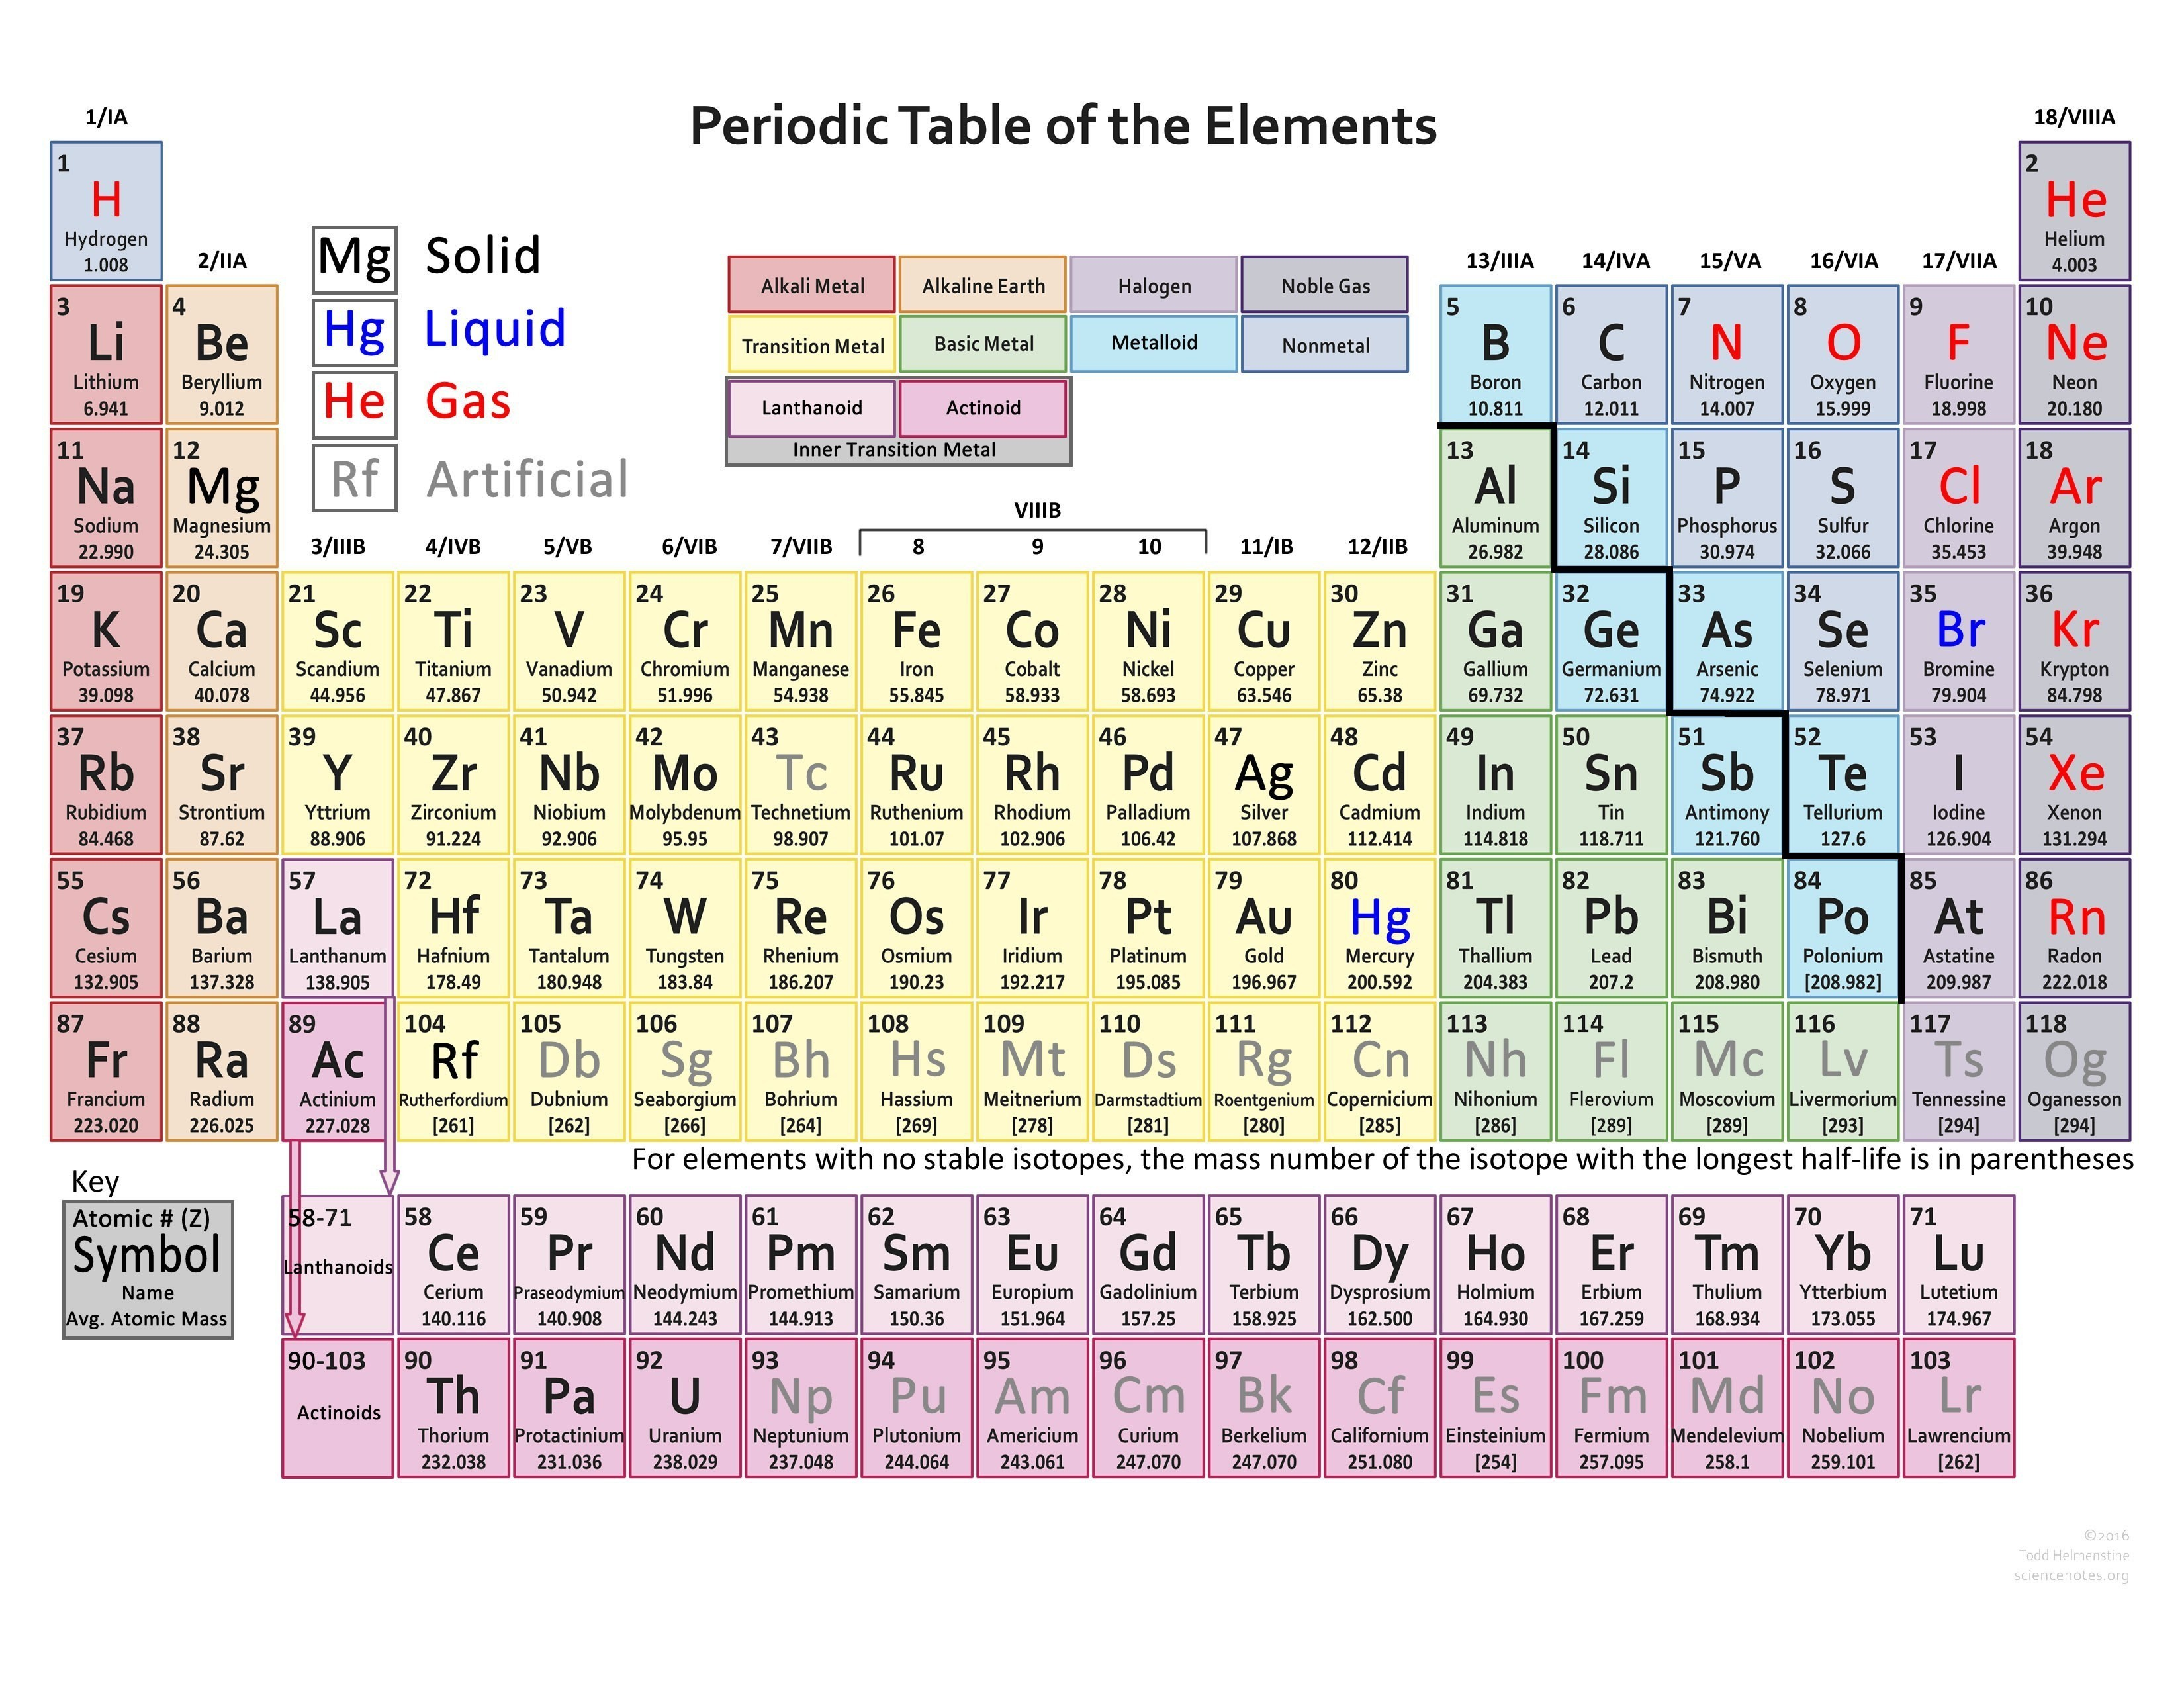 you can find the valencies of the elements you want in the periodic table but we are providing you with the list of valencies of all the elements in the